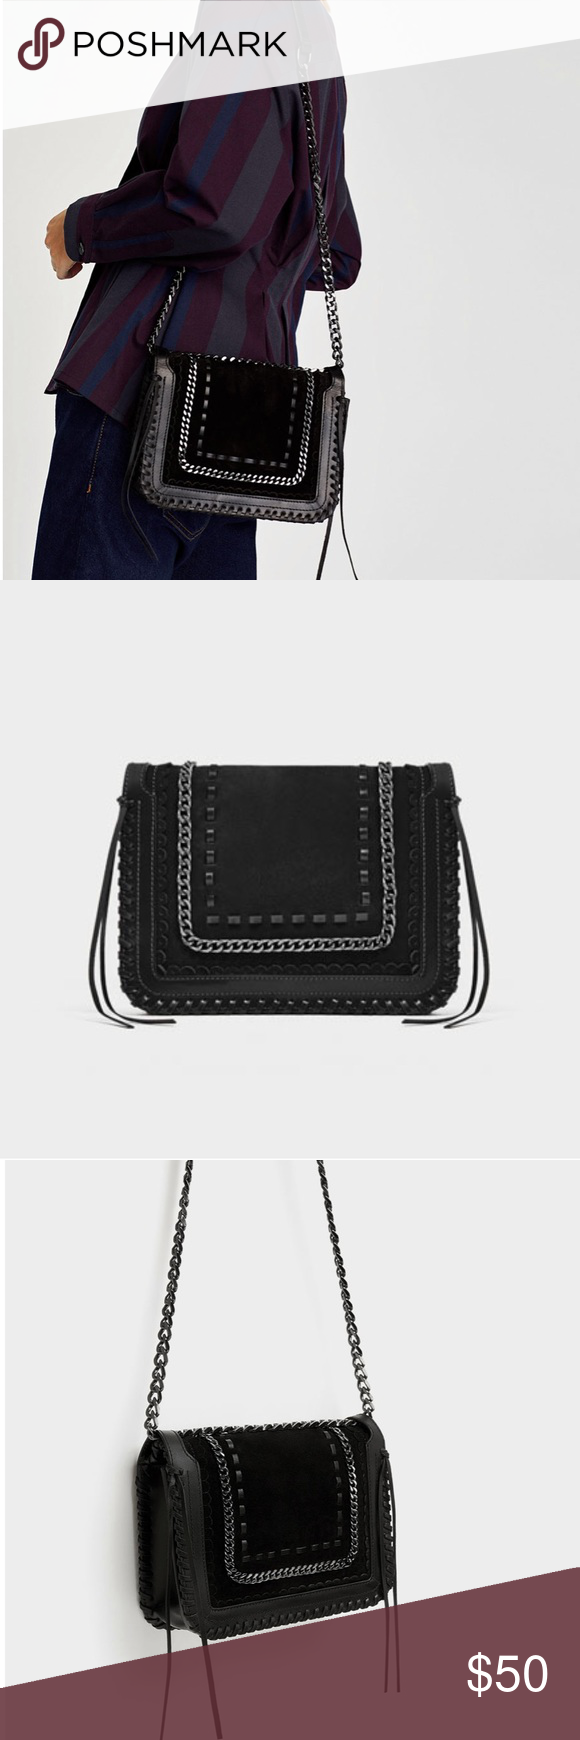 023639768a Zara crossbody bag BRAND NEW JUST TOOK OFF TAGS Black leather crossbody bag  with chain link Detail trim on front flap Features leather top stitching  around ...